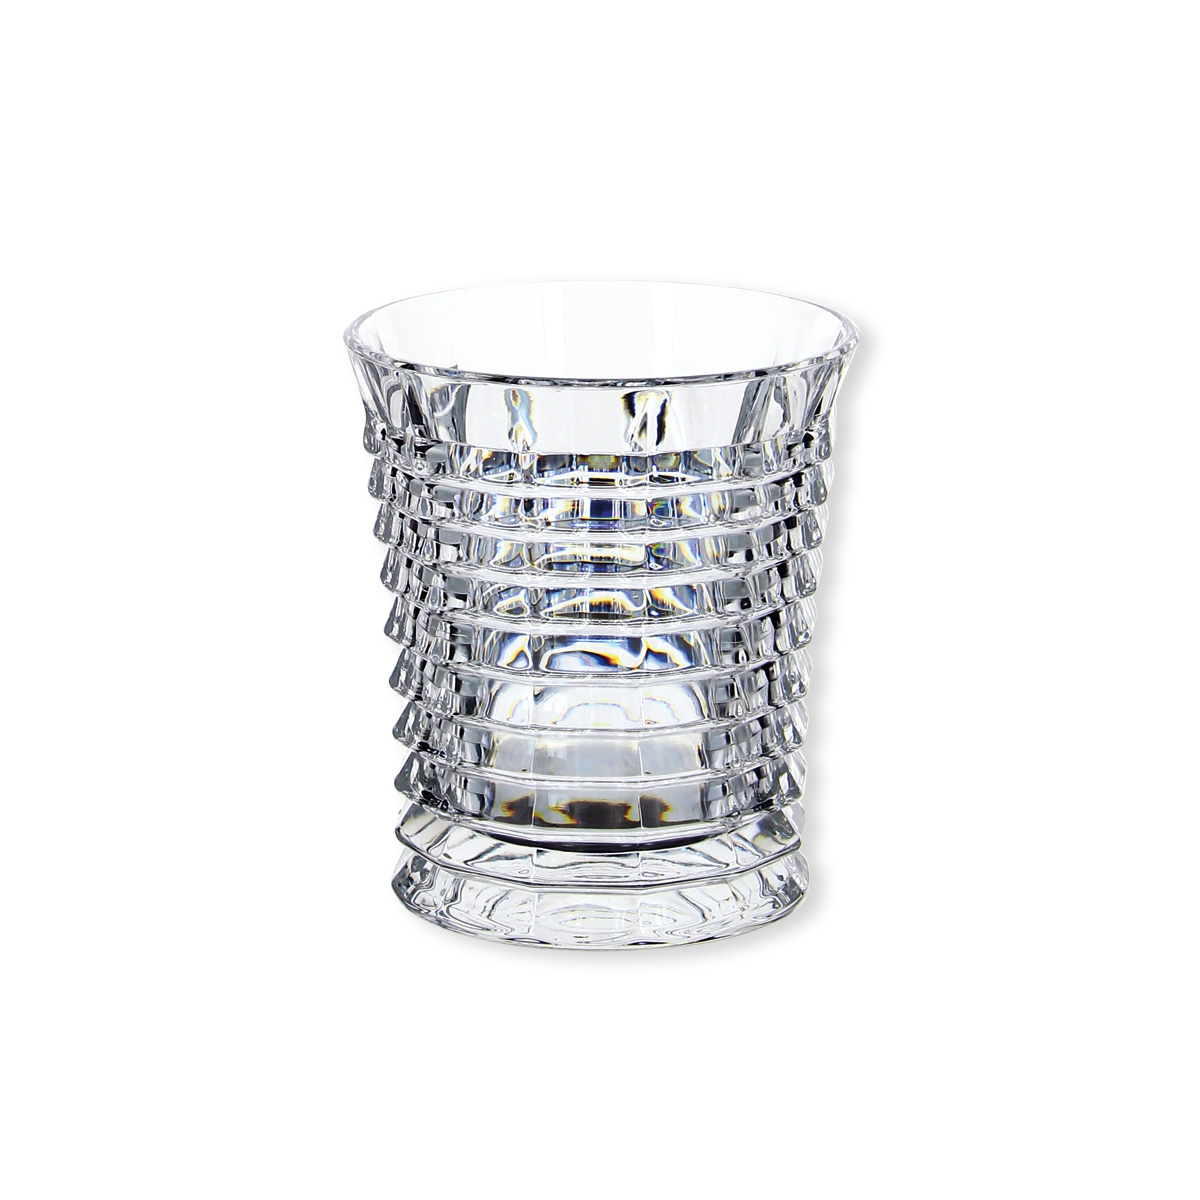 lot de 6 verres whisky en cristal design 30cl bruno evrard. Black Bedroom Furniture Sets. Home Design Ideas